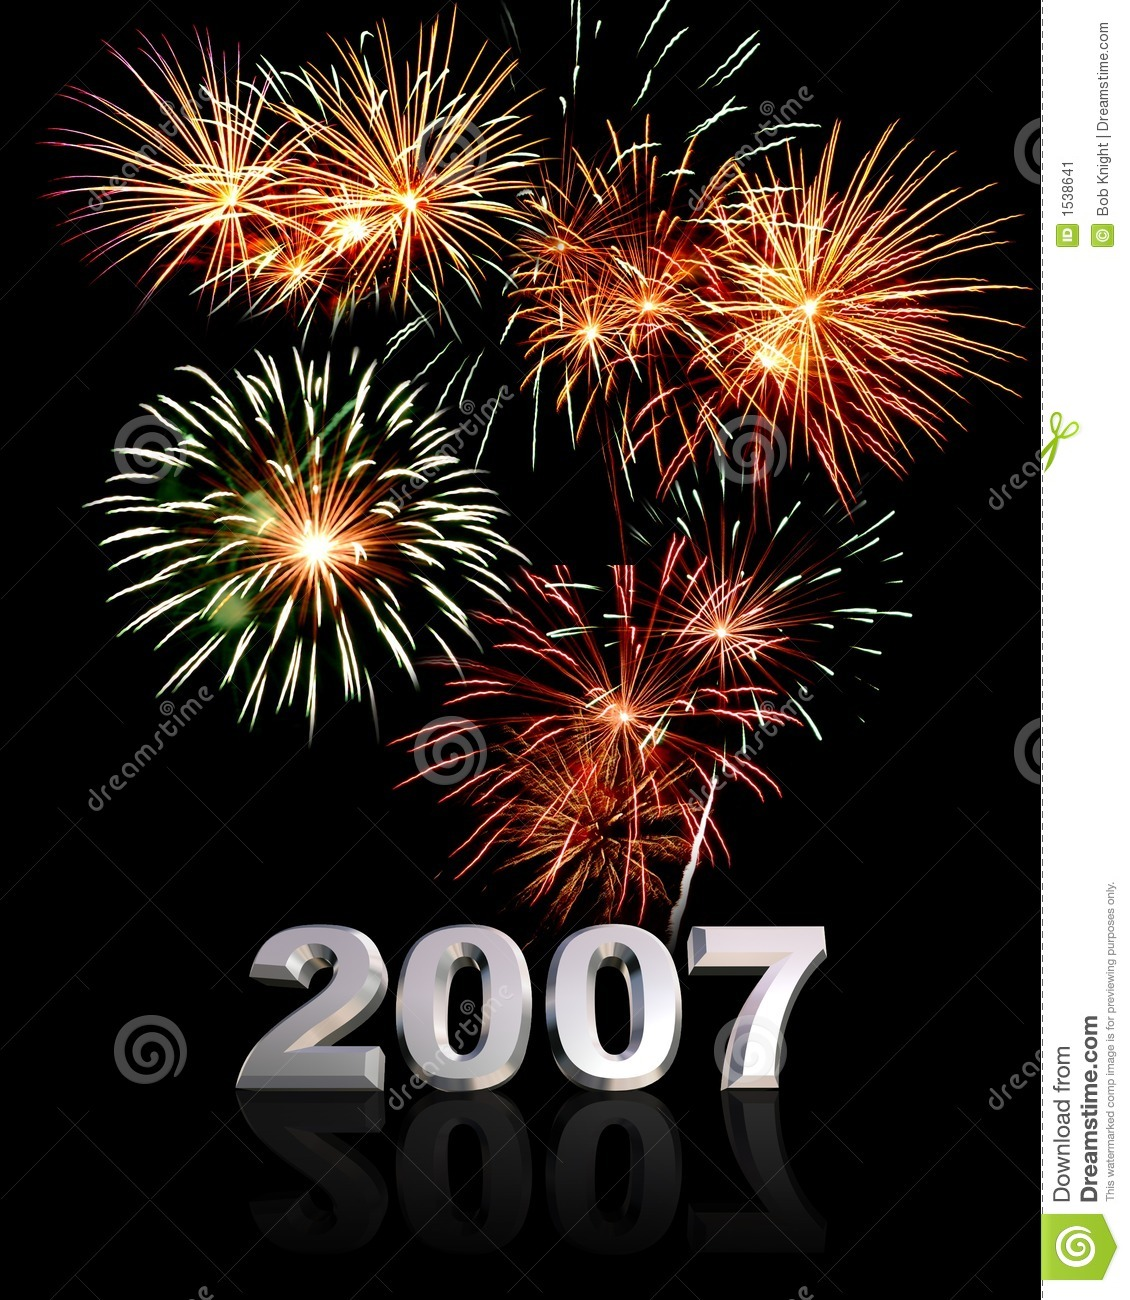 New Year 2007 Stock Image